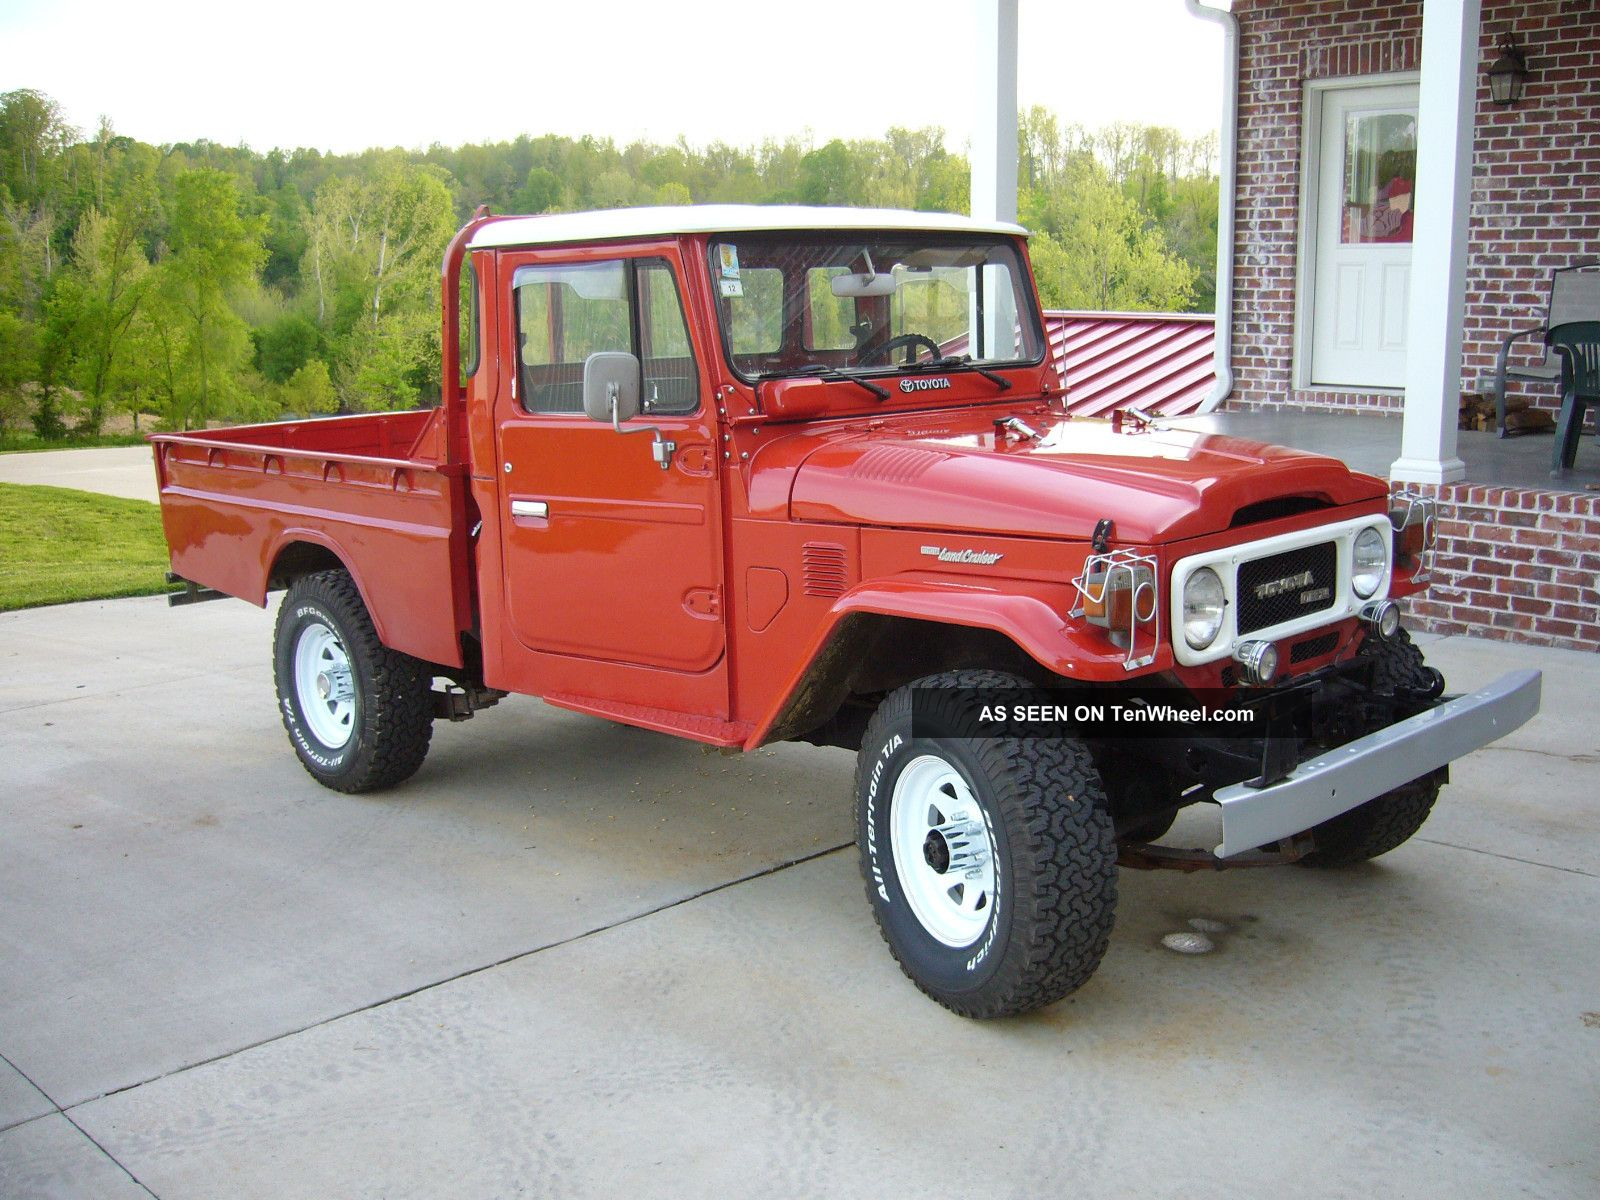 1980 toyota land cruiser fj45 diesel pickup. Black Bedroom Furniture Sets. Home Design Ideas